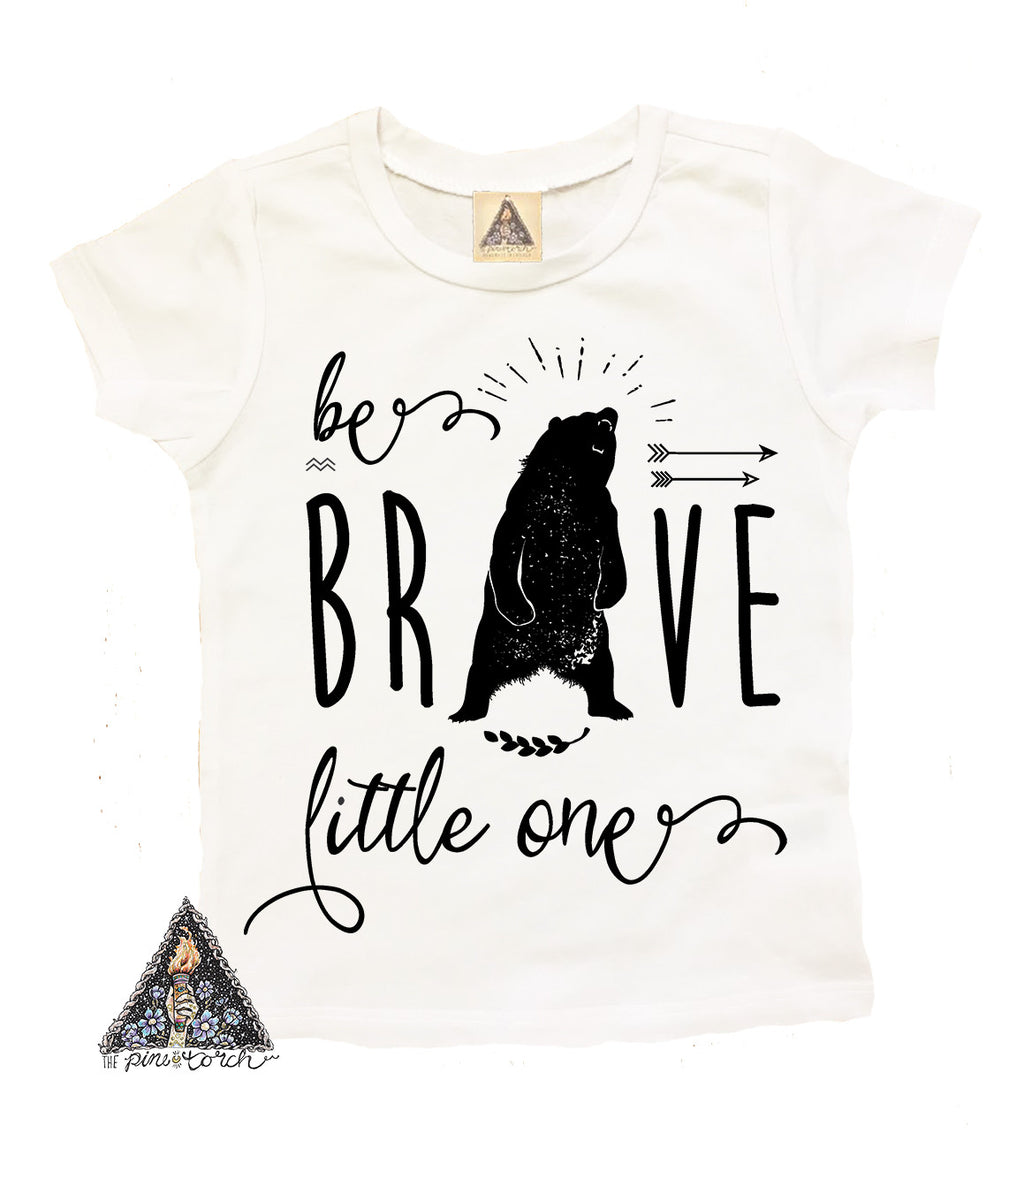 « BE BRAVE LITTLE ONE » KID'S TEE